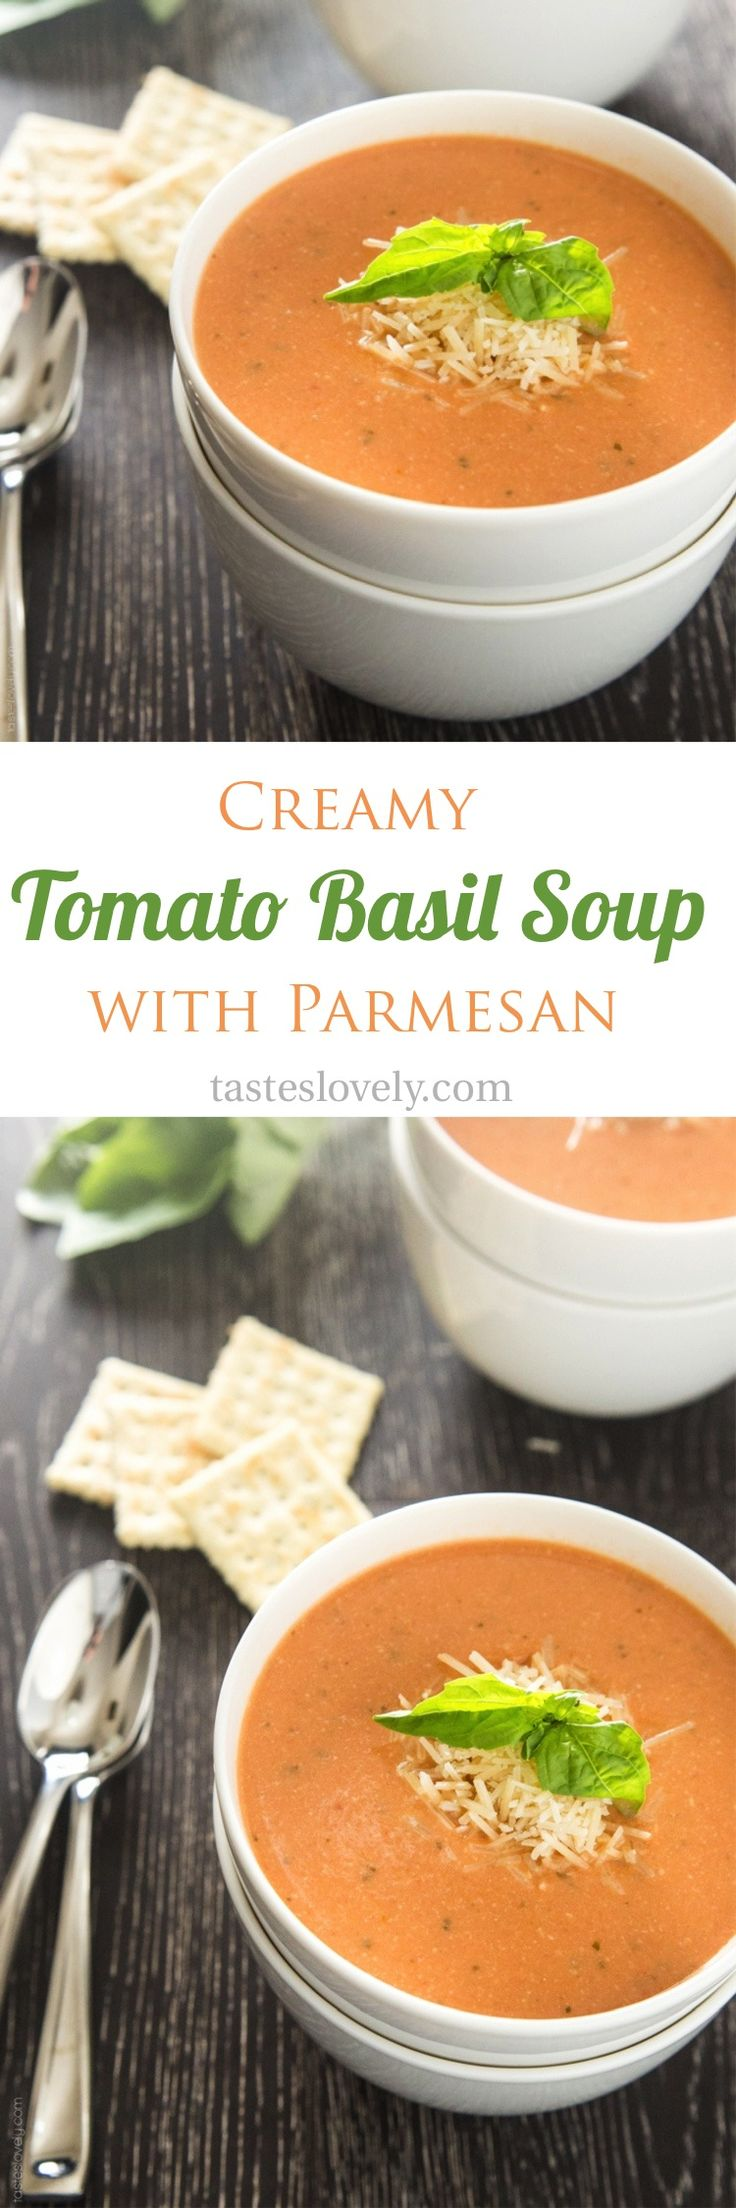 sell gold Creamy Tomato Basil Soup with Parmesan | Recipe | Tomato Basil Soup, Basil and Parmesan